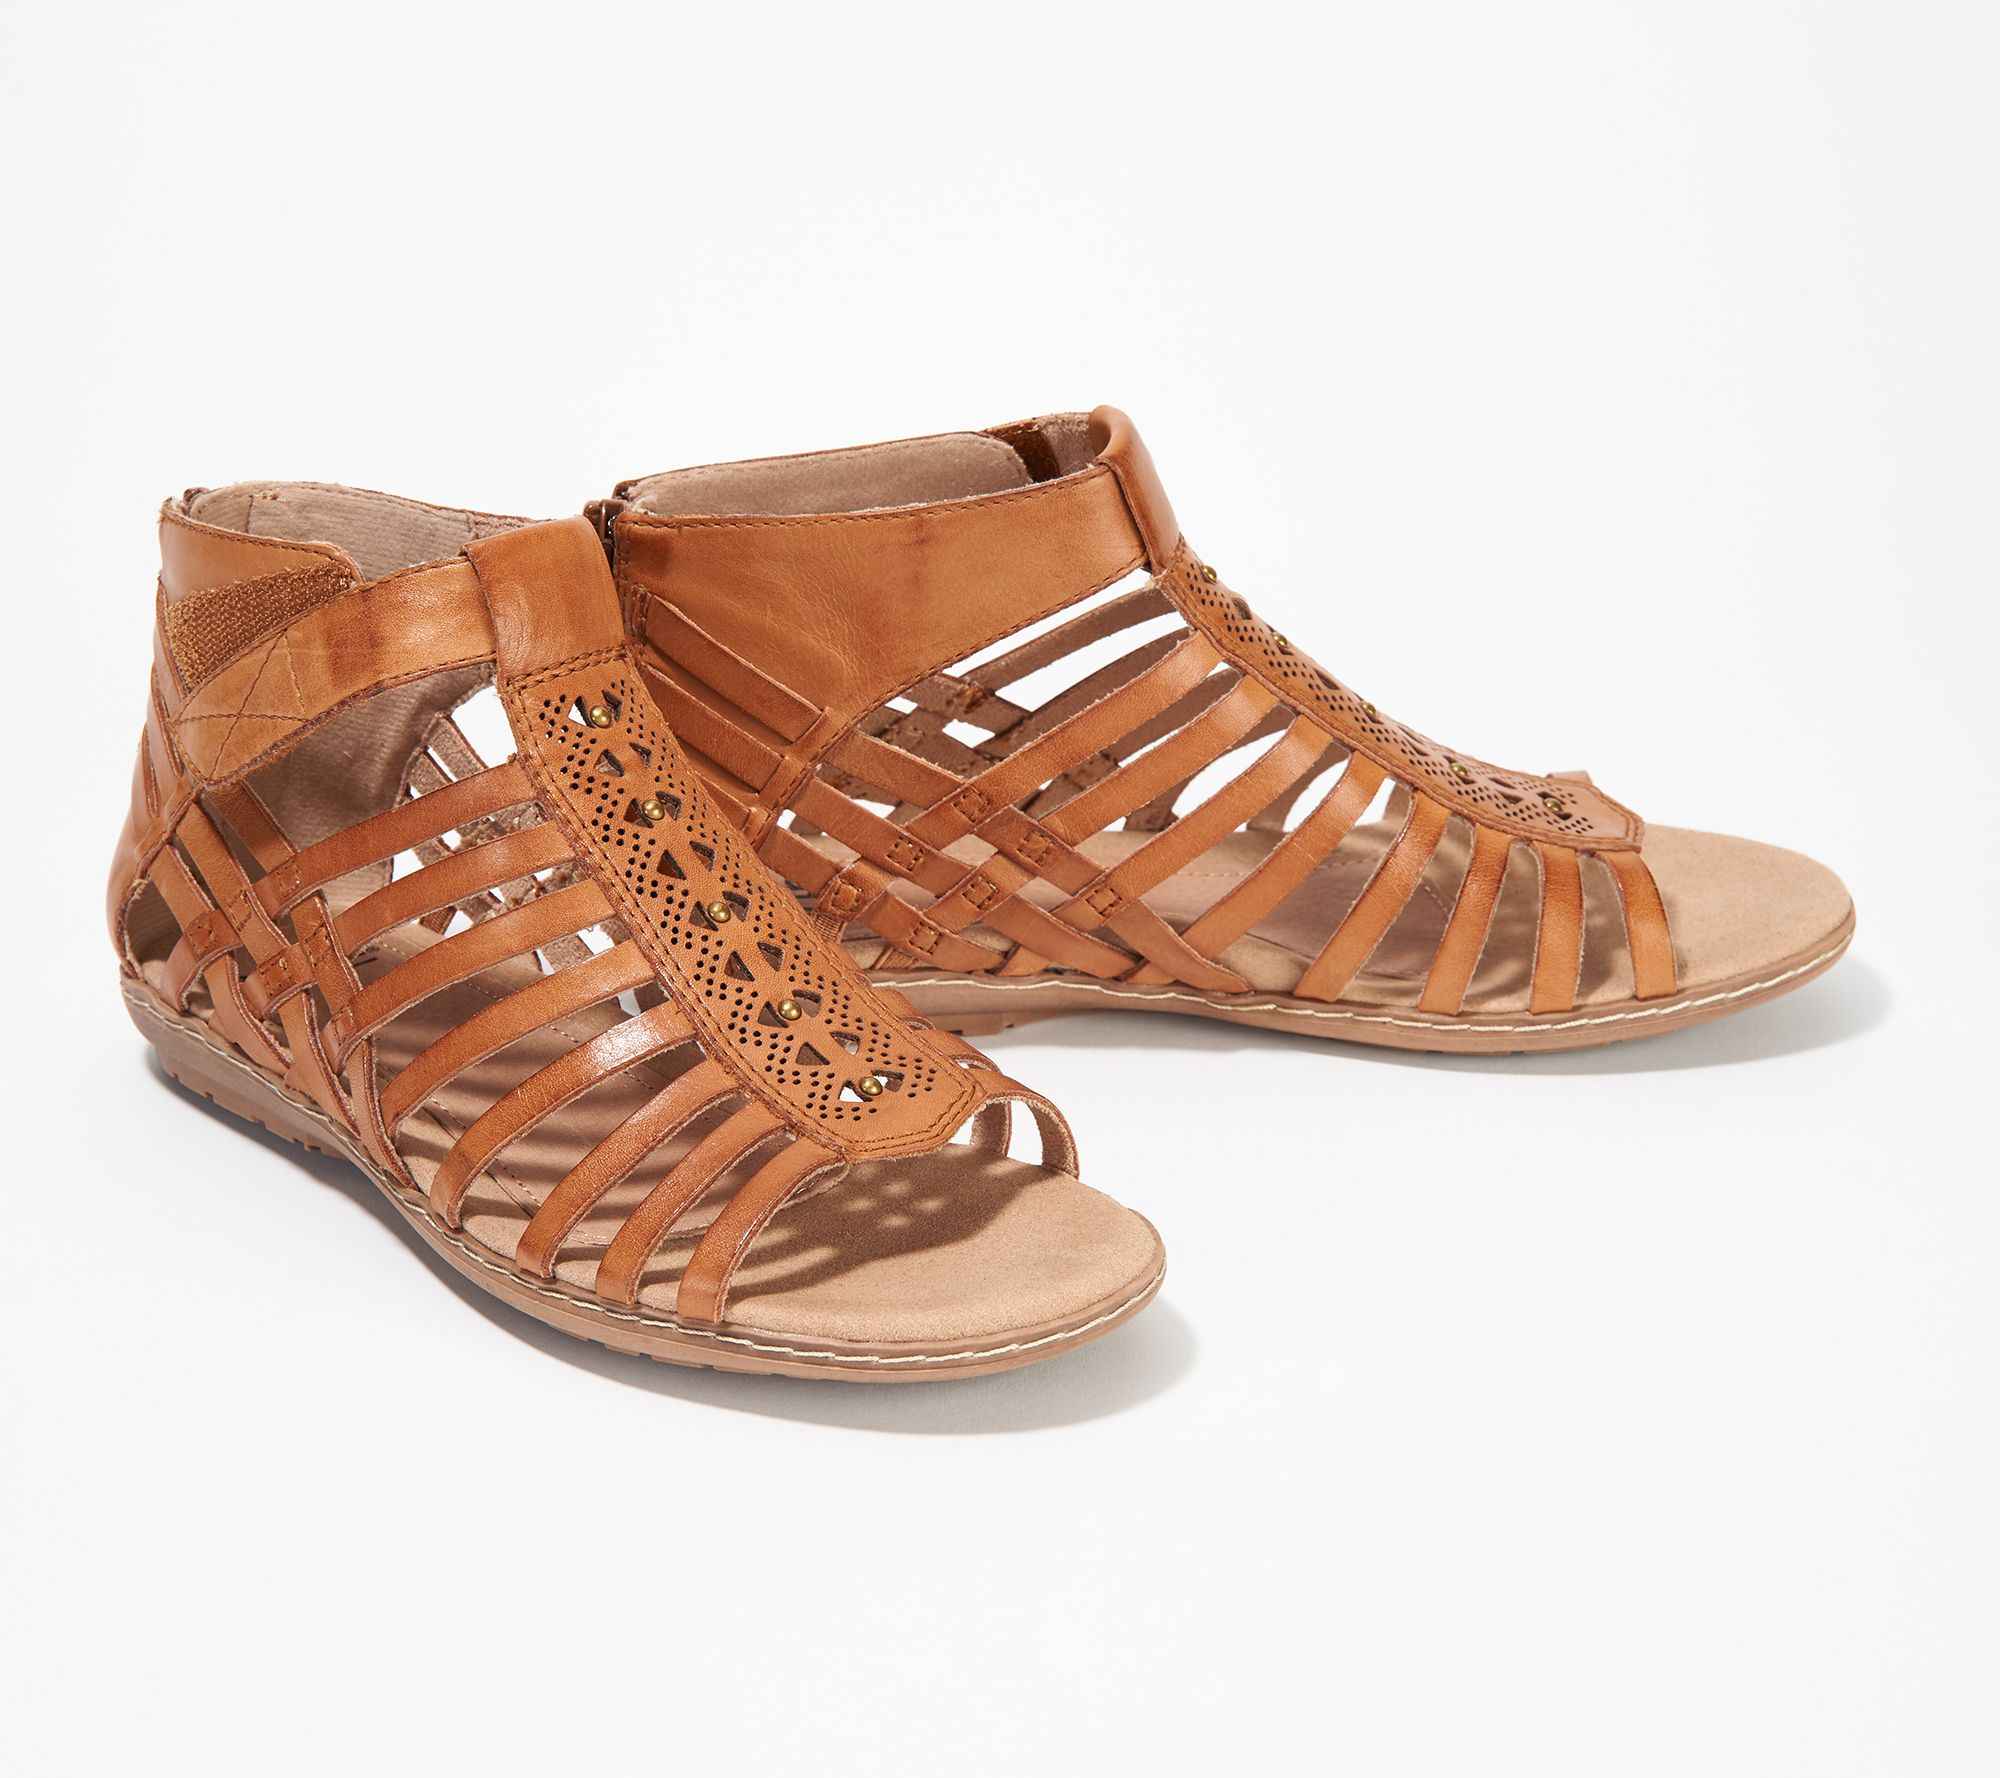 0f2b22d2f Earth Leather Gladiator Sandals - Camellia Marconi - Page 1 — QVC.com